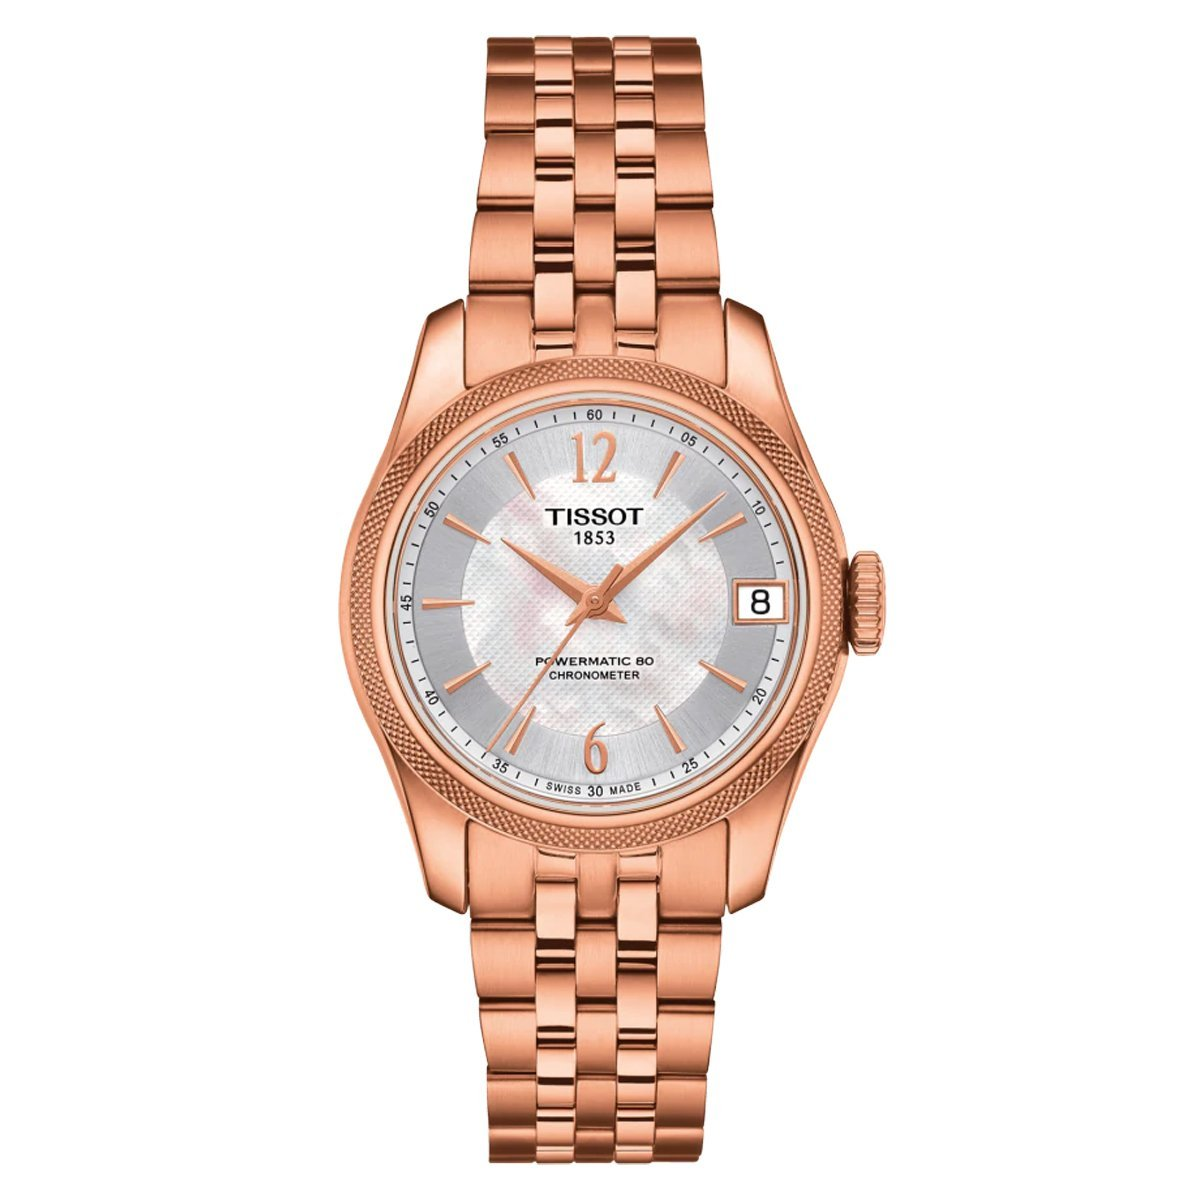 Tissot T-Classic Ballade Powermatic 80 Rose Gold - Watches & Crystals